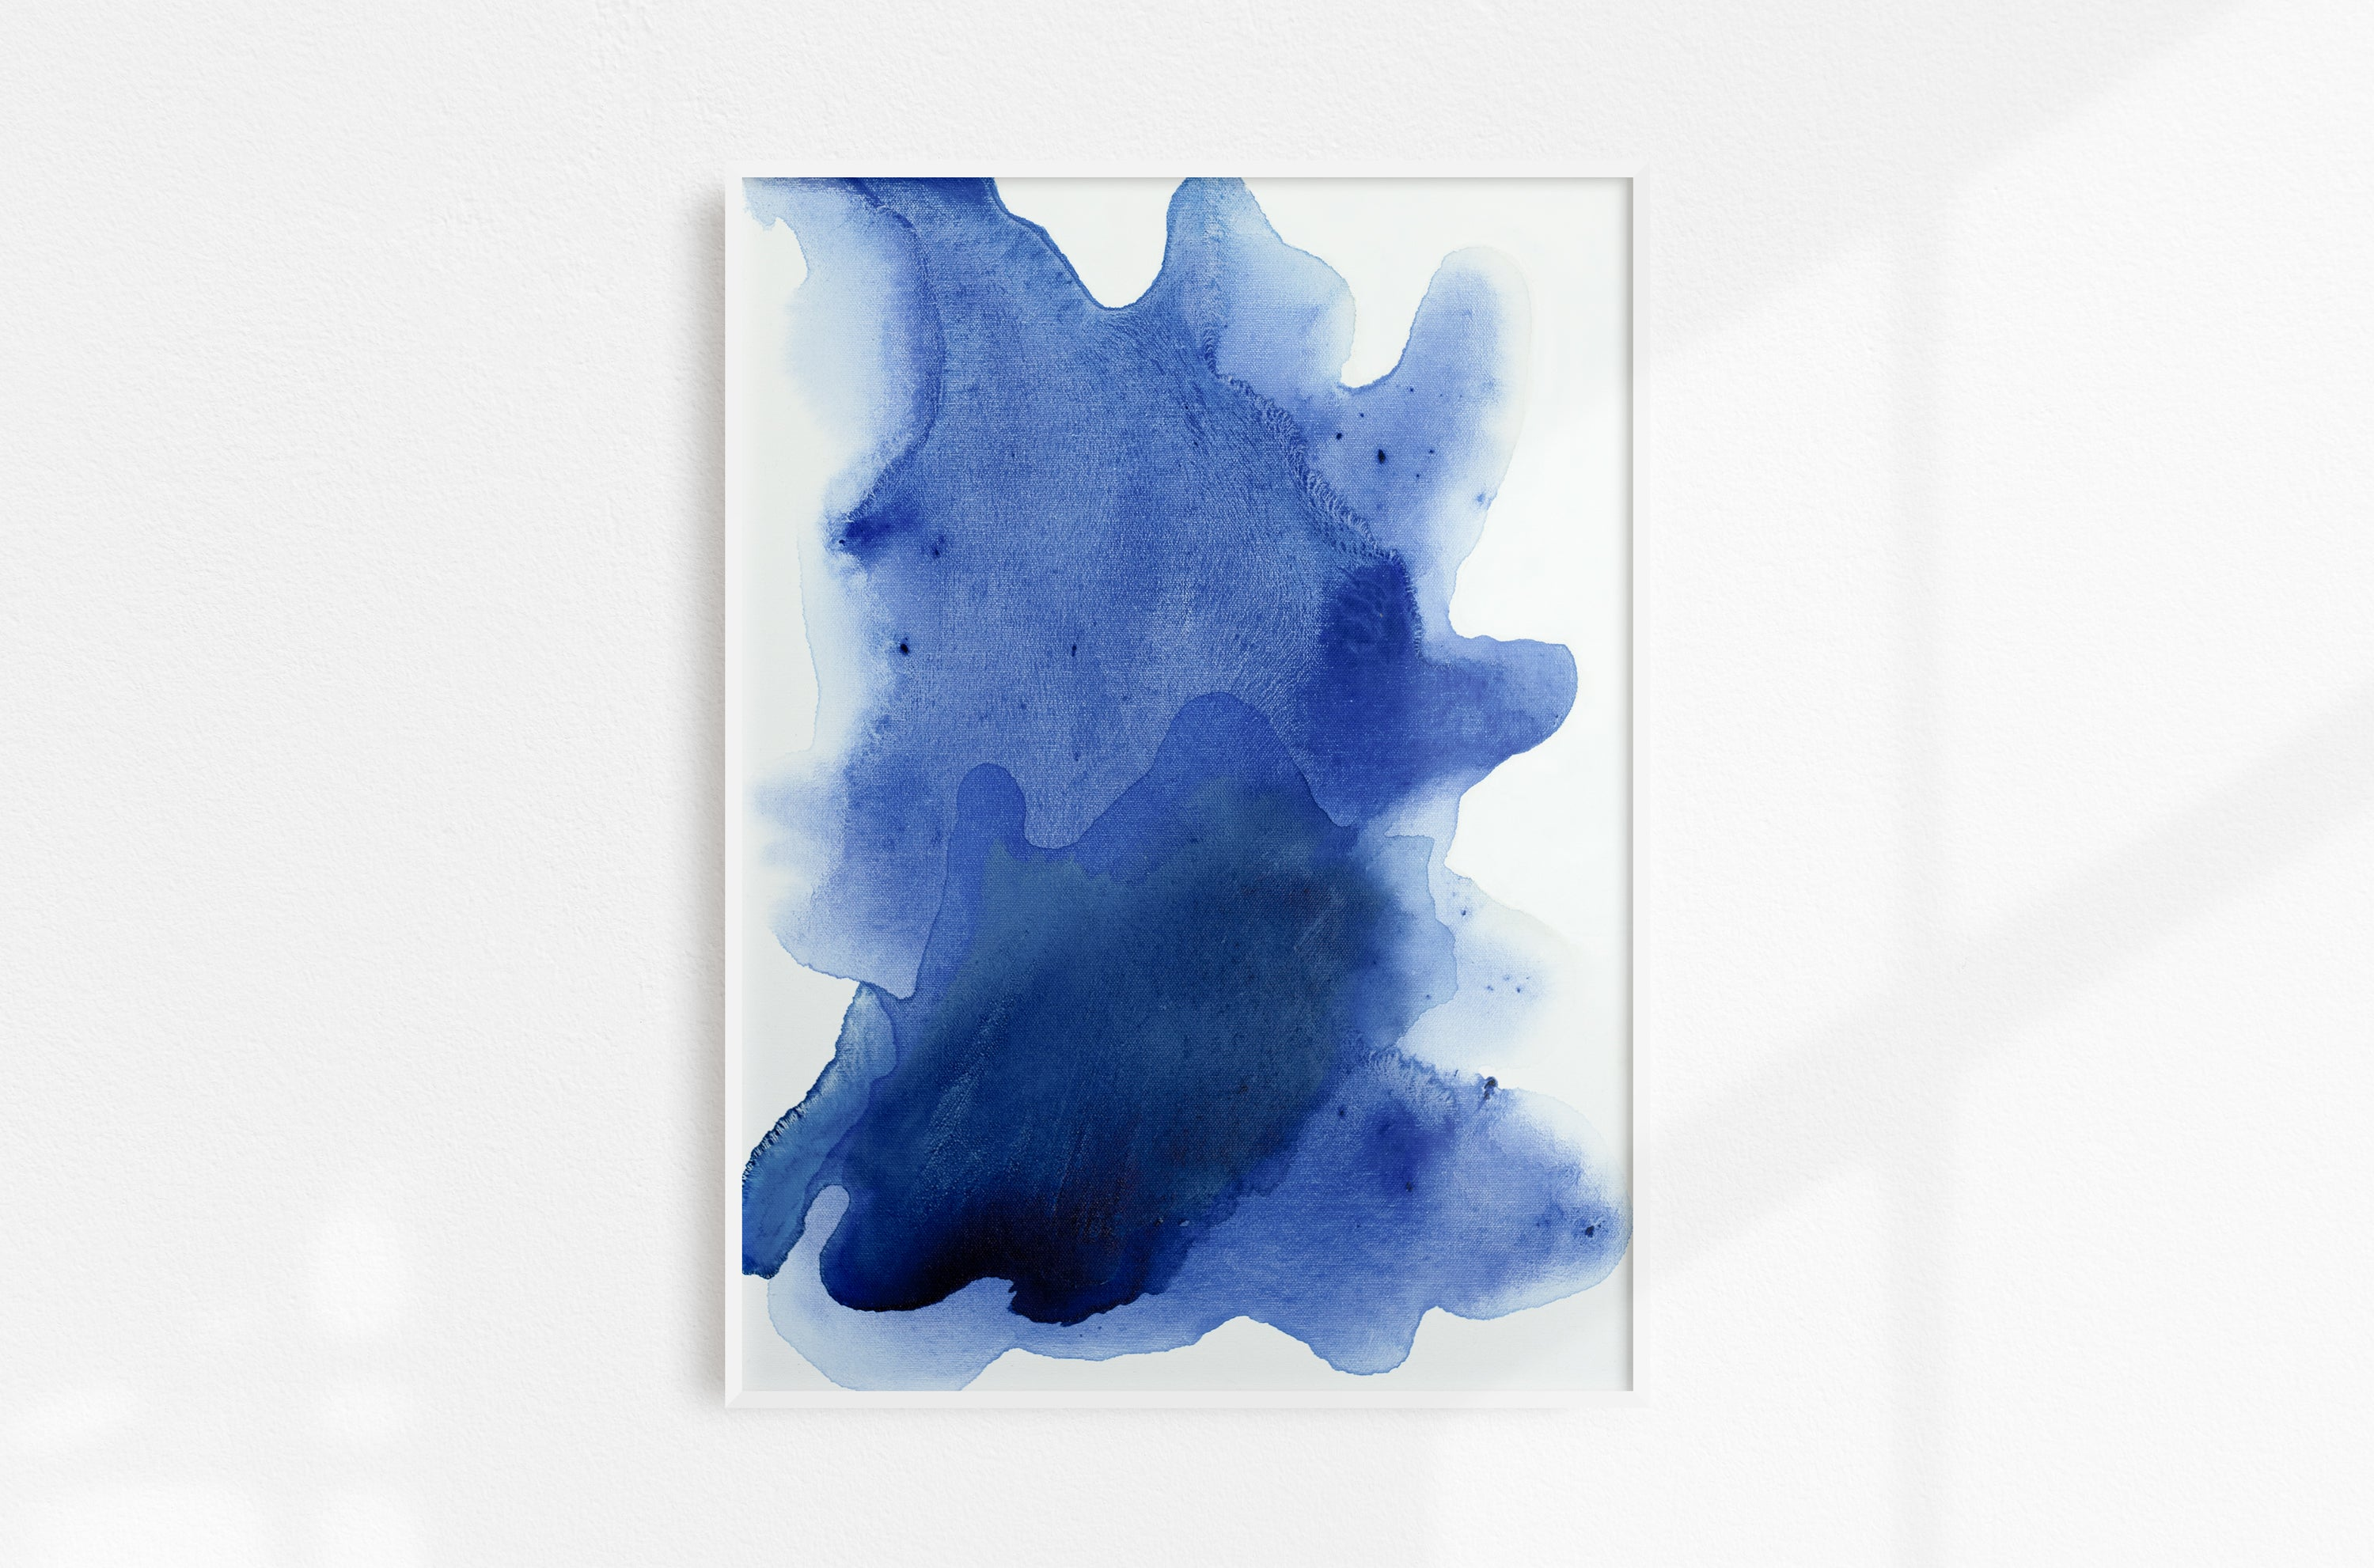 Abstract painting on canvas, fluid painting on canvas, 18x24, aquamarine blue, blue, cobalt blue